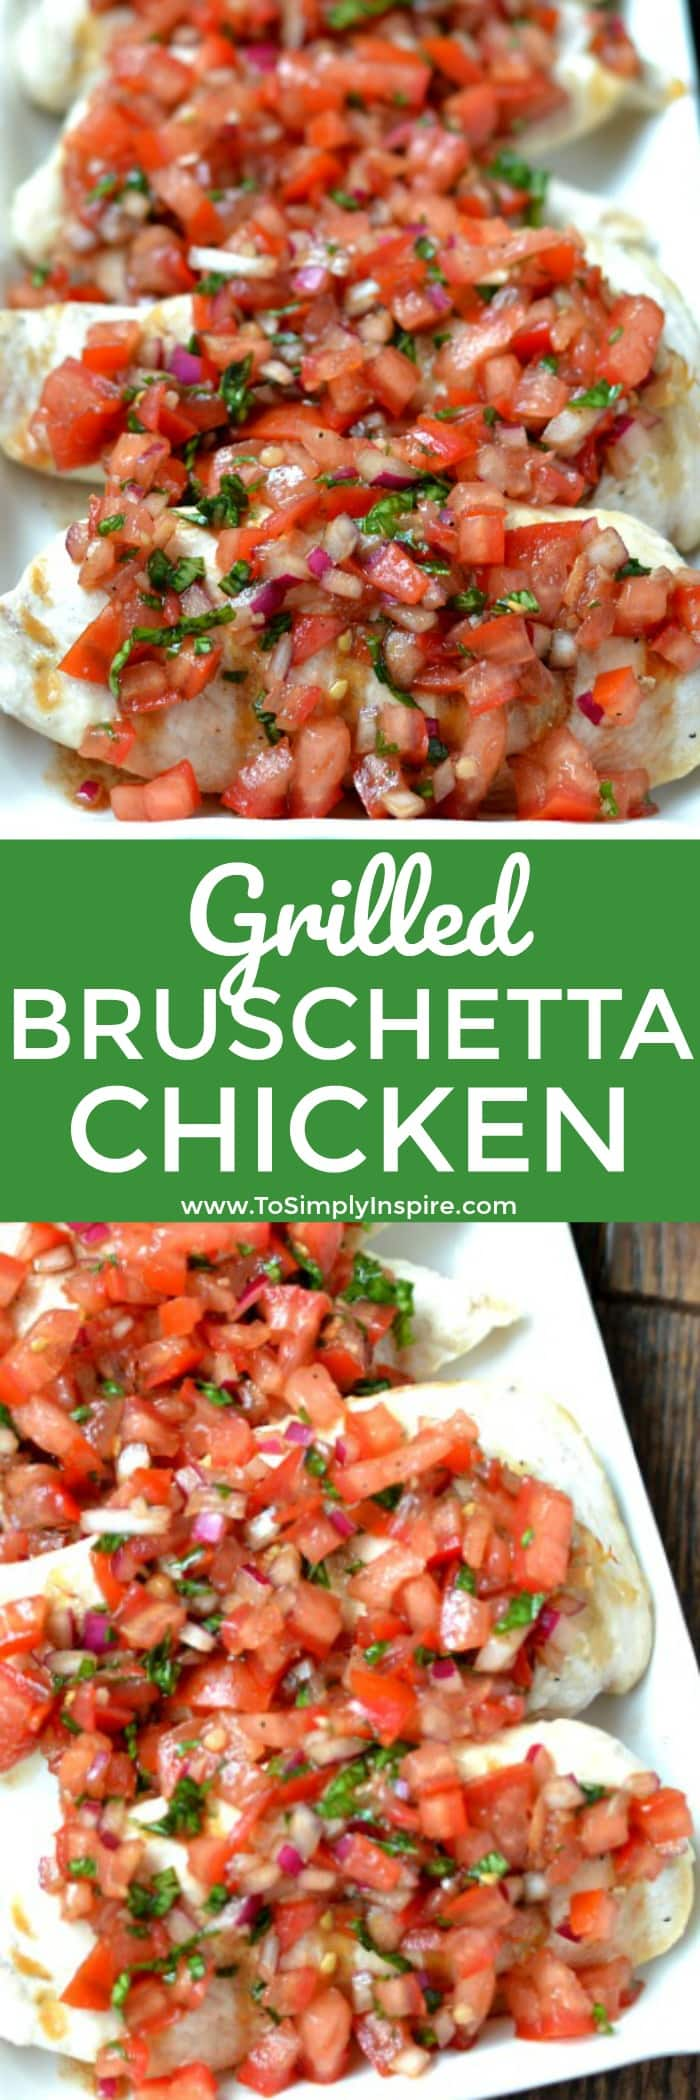 Perfect Grilled Bruschetta Chicken is made with fresh tomatoes, balsamic vinegar, garlic, red onion, basil and oil. This easily turns simple, boring chicken into a spectacular mouthwatering dish!